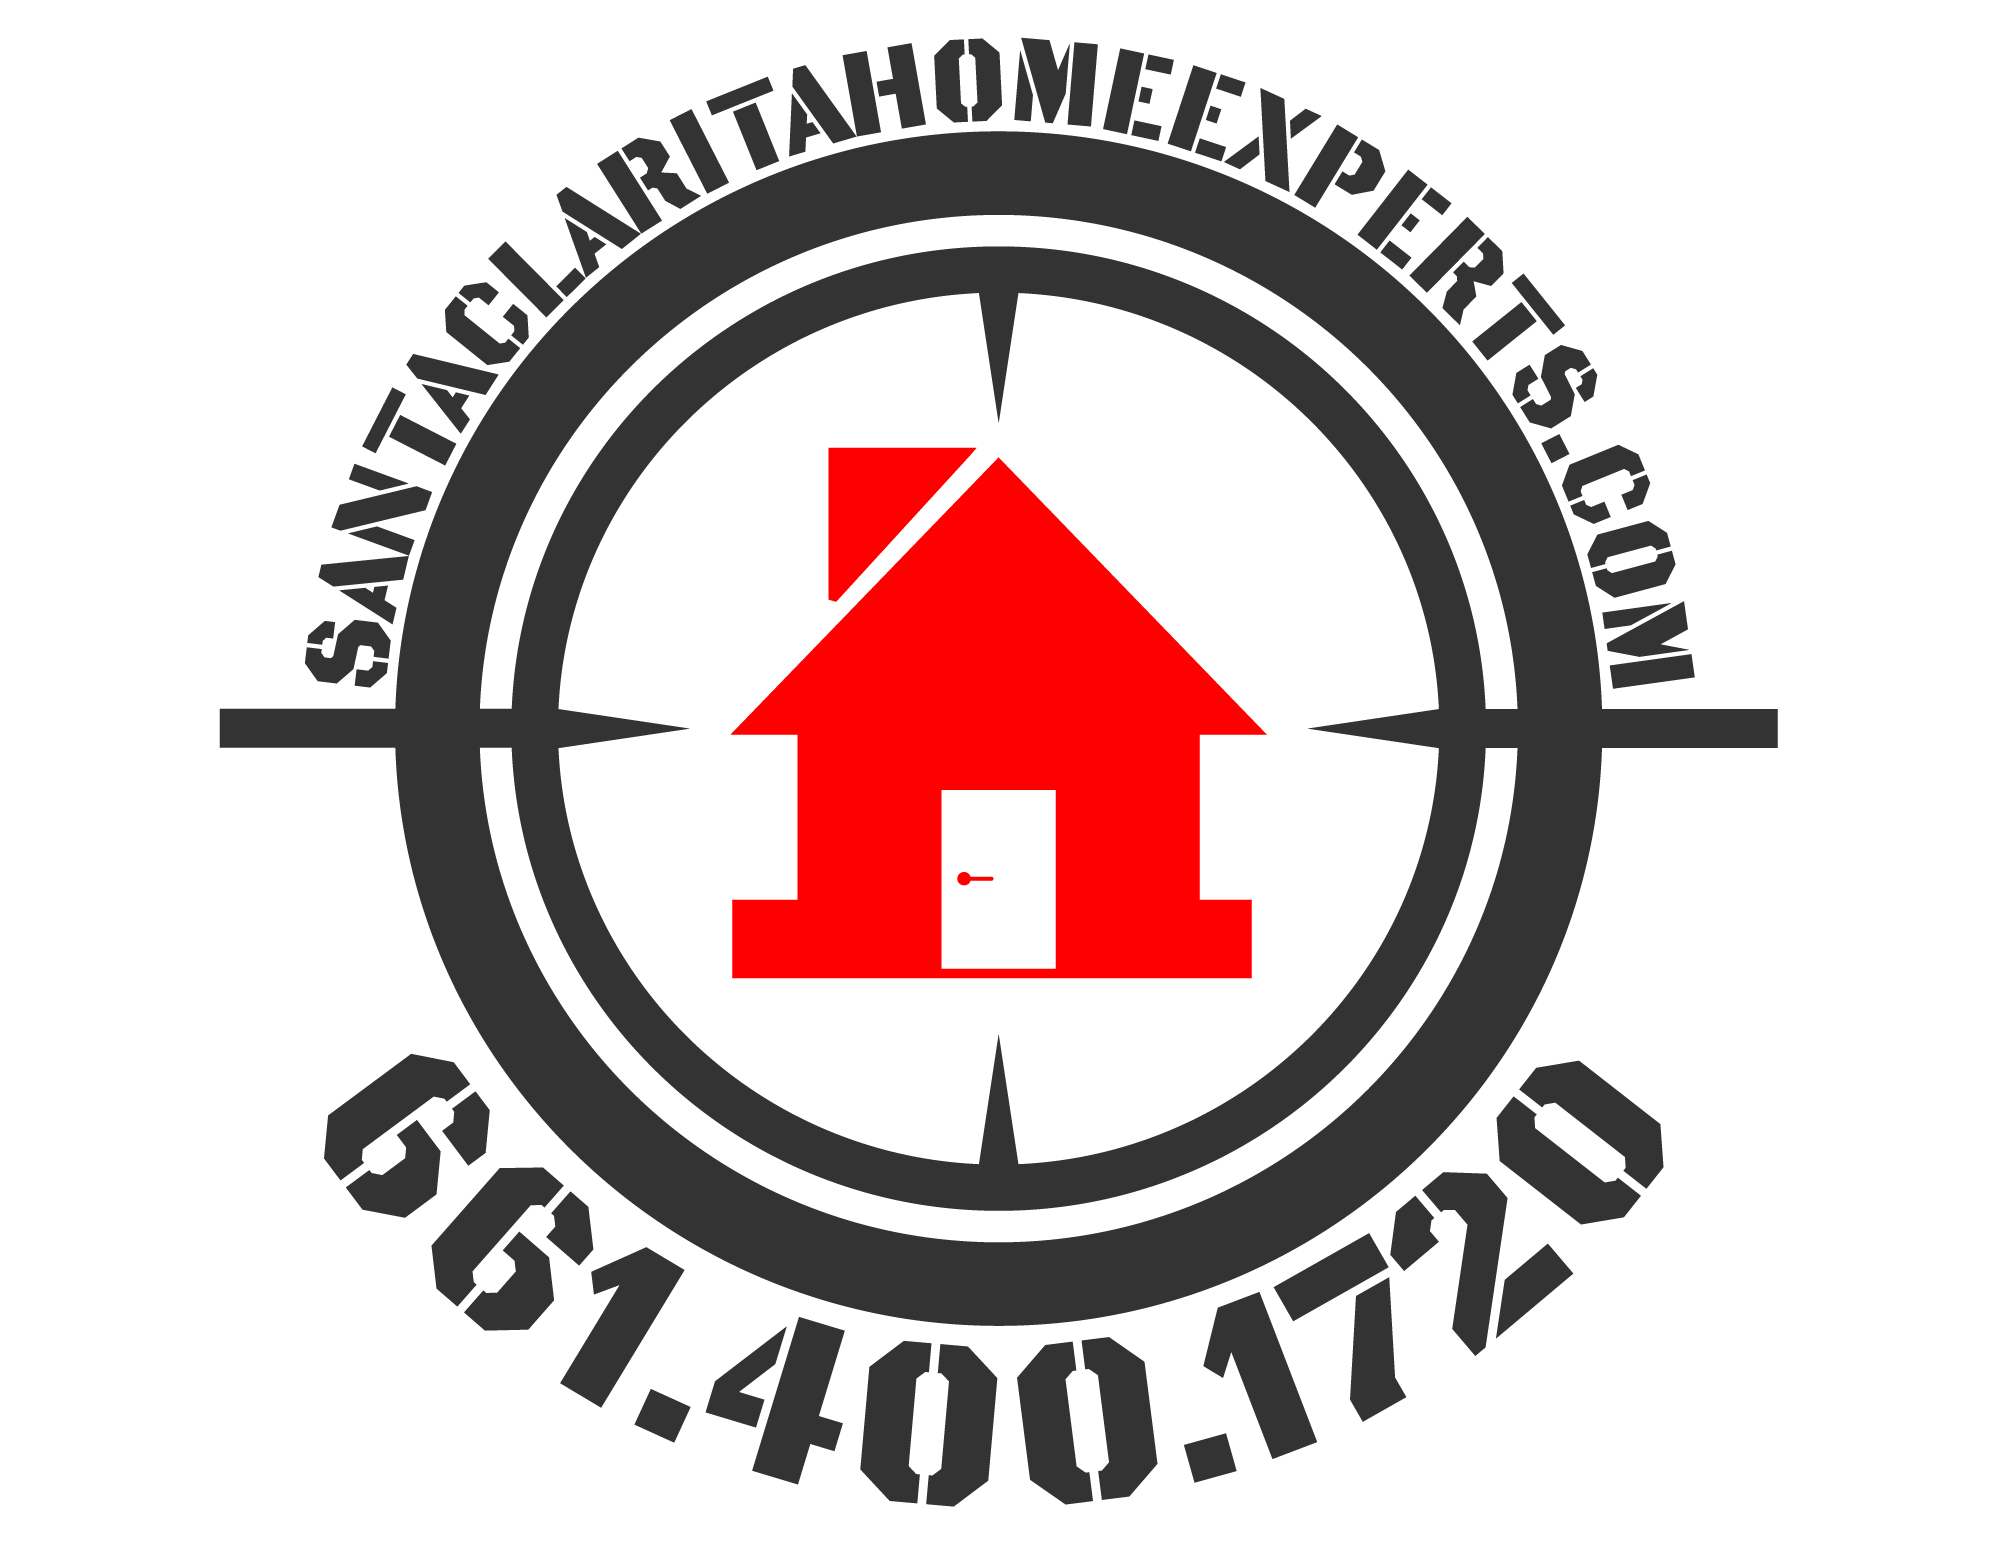 Best Santa Clarita home experts and real estate agents